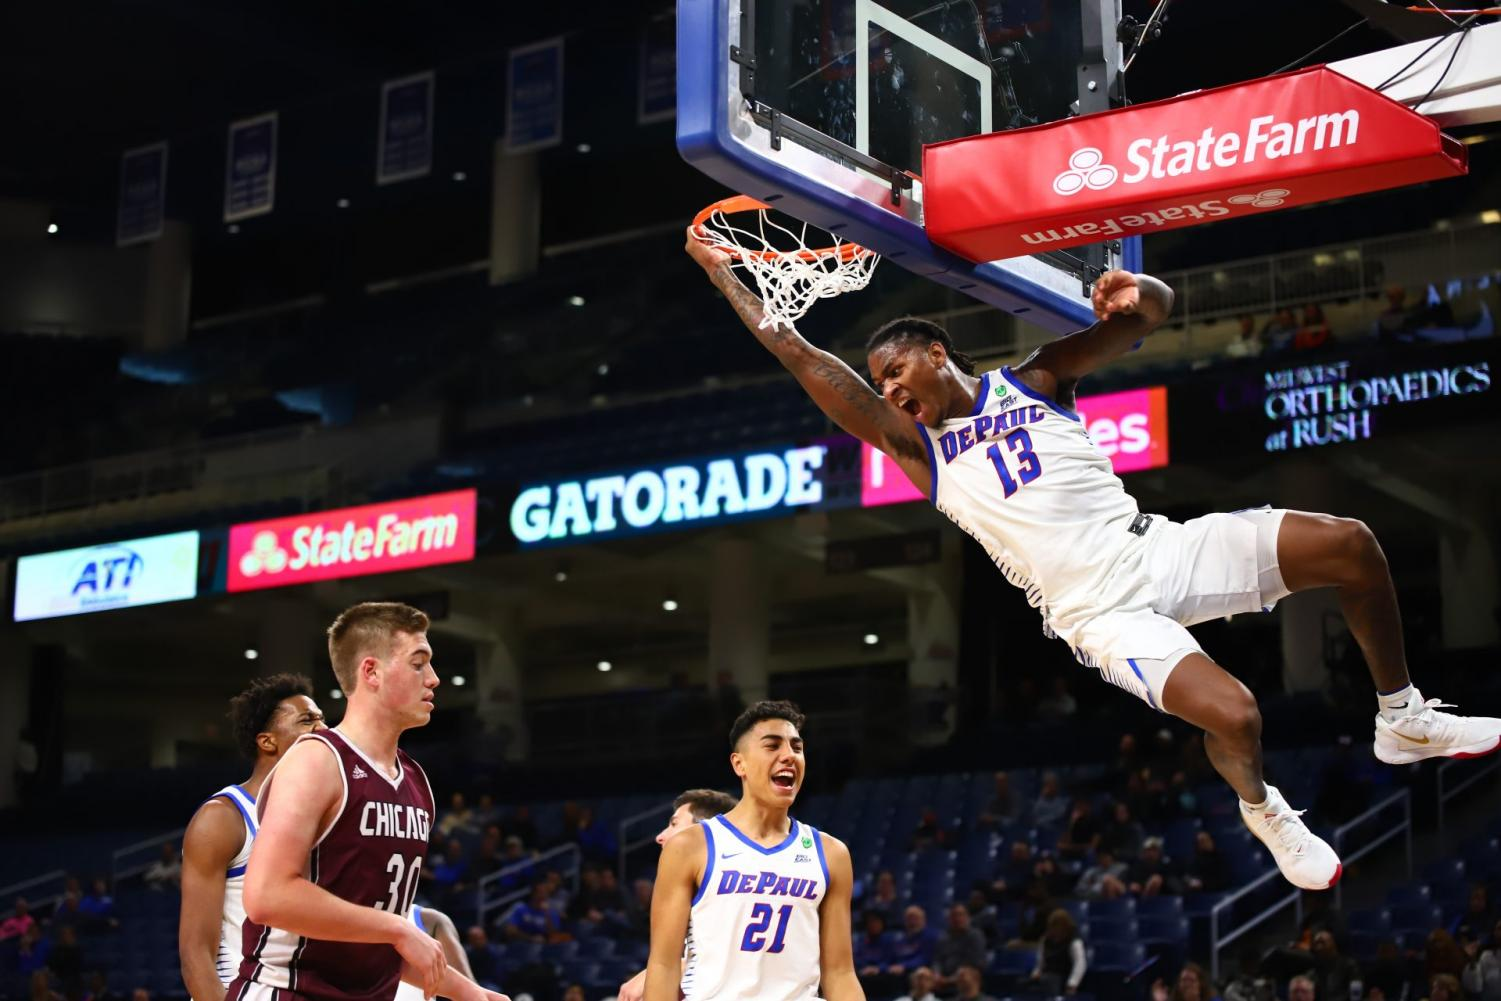 Sophomore guard Darious Hall celebrates a ferocious dunk in the second half against U Chicago on Tuesday night at Wintrust Arena.